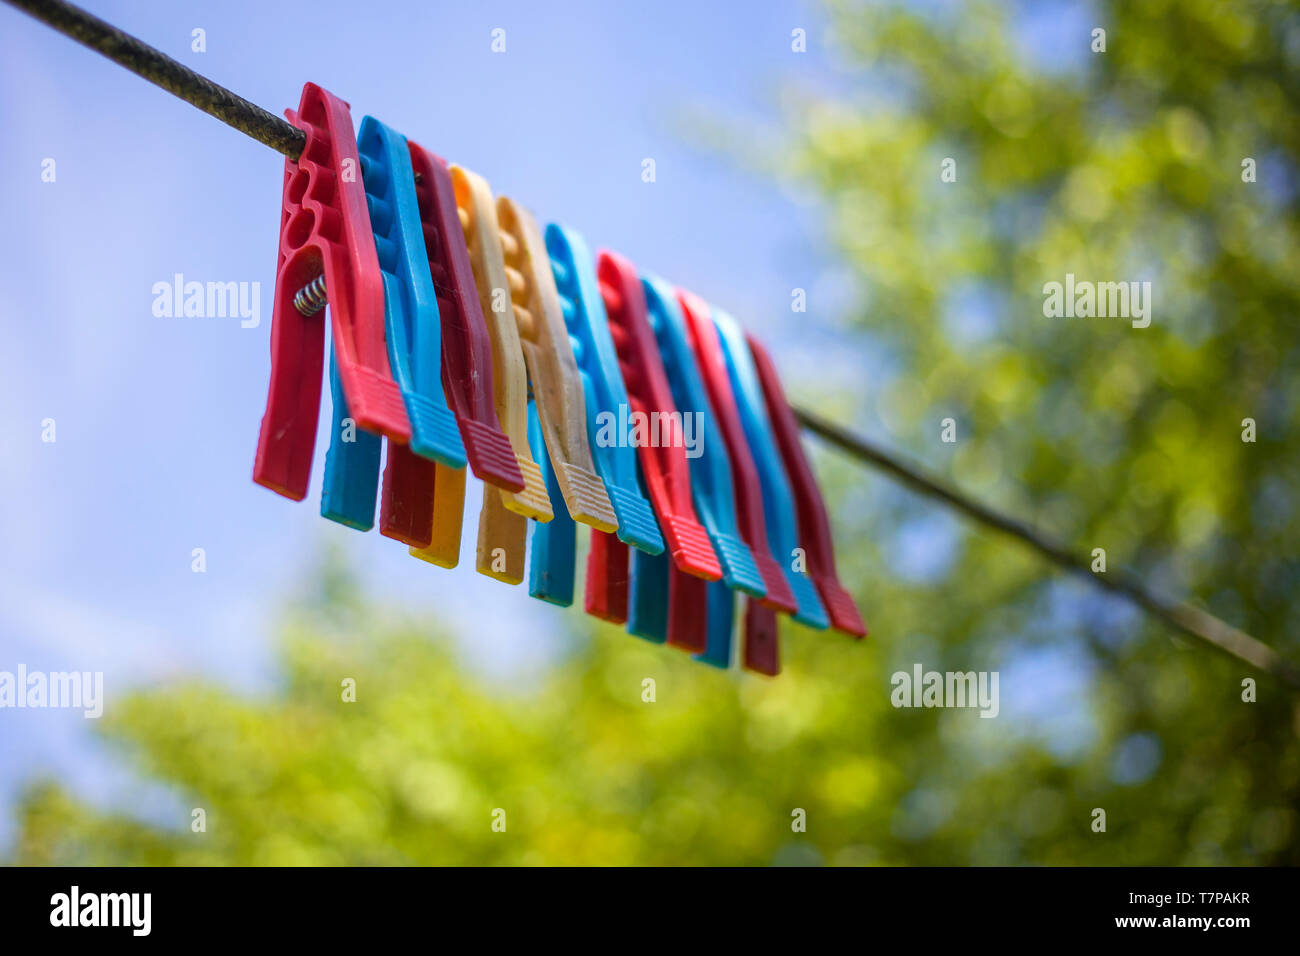 Row of colorful pegs on a line against a blue sky Stock Photo